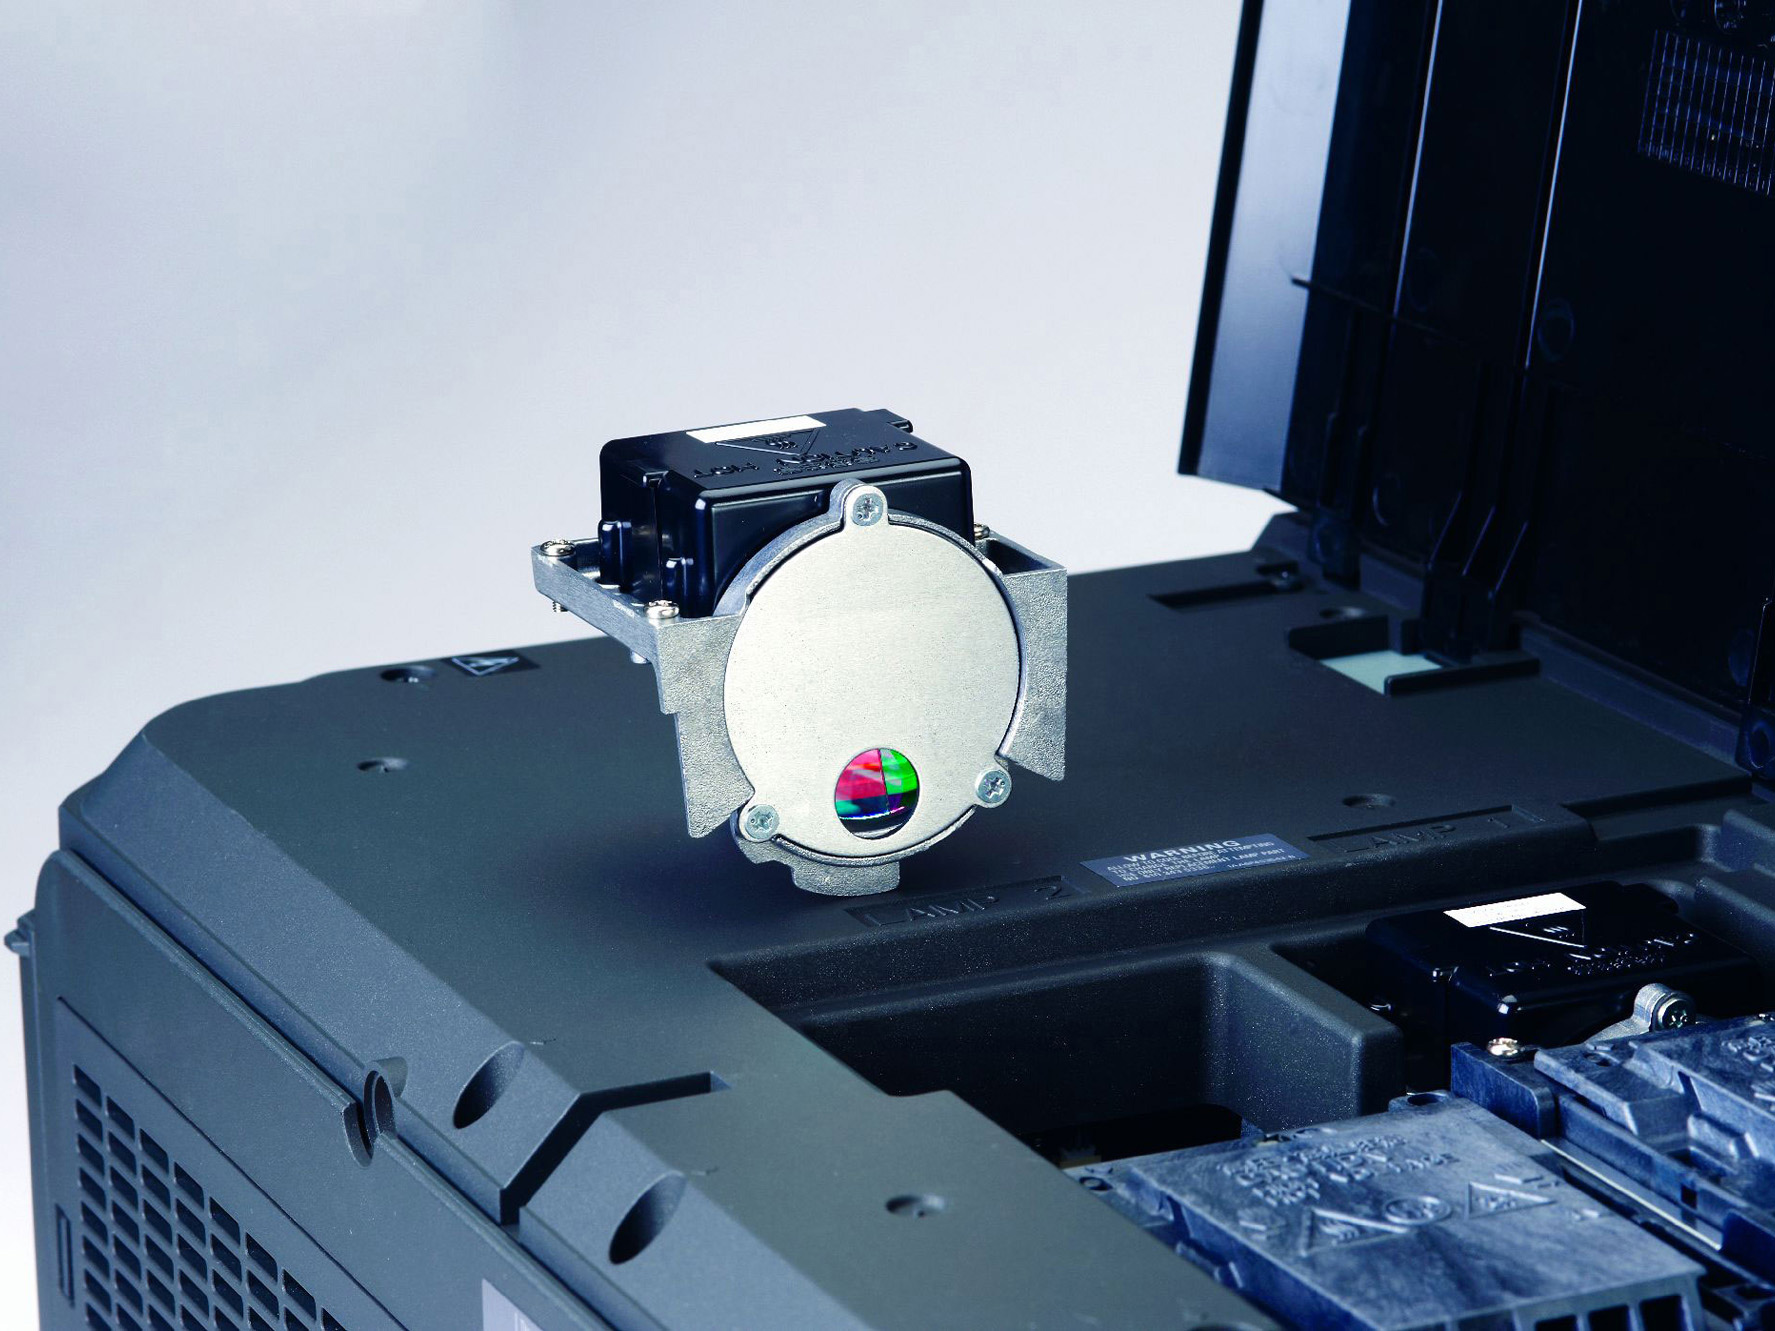 /globalassets/.catalog/products/images/christie-dhd700/gallery/christie-dhd700-1-chip-digital-projector-image6.jpg